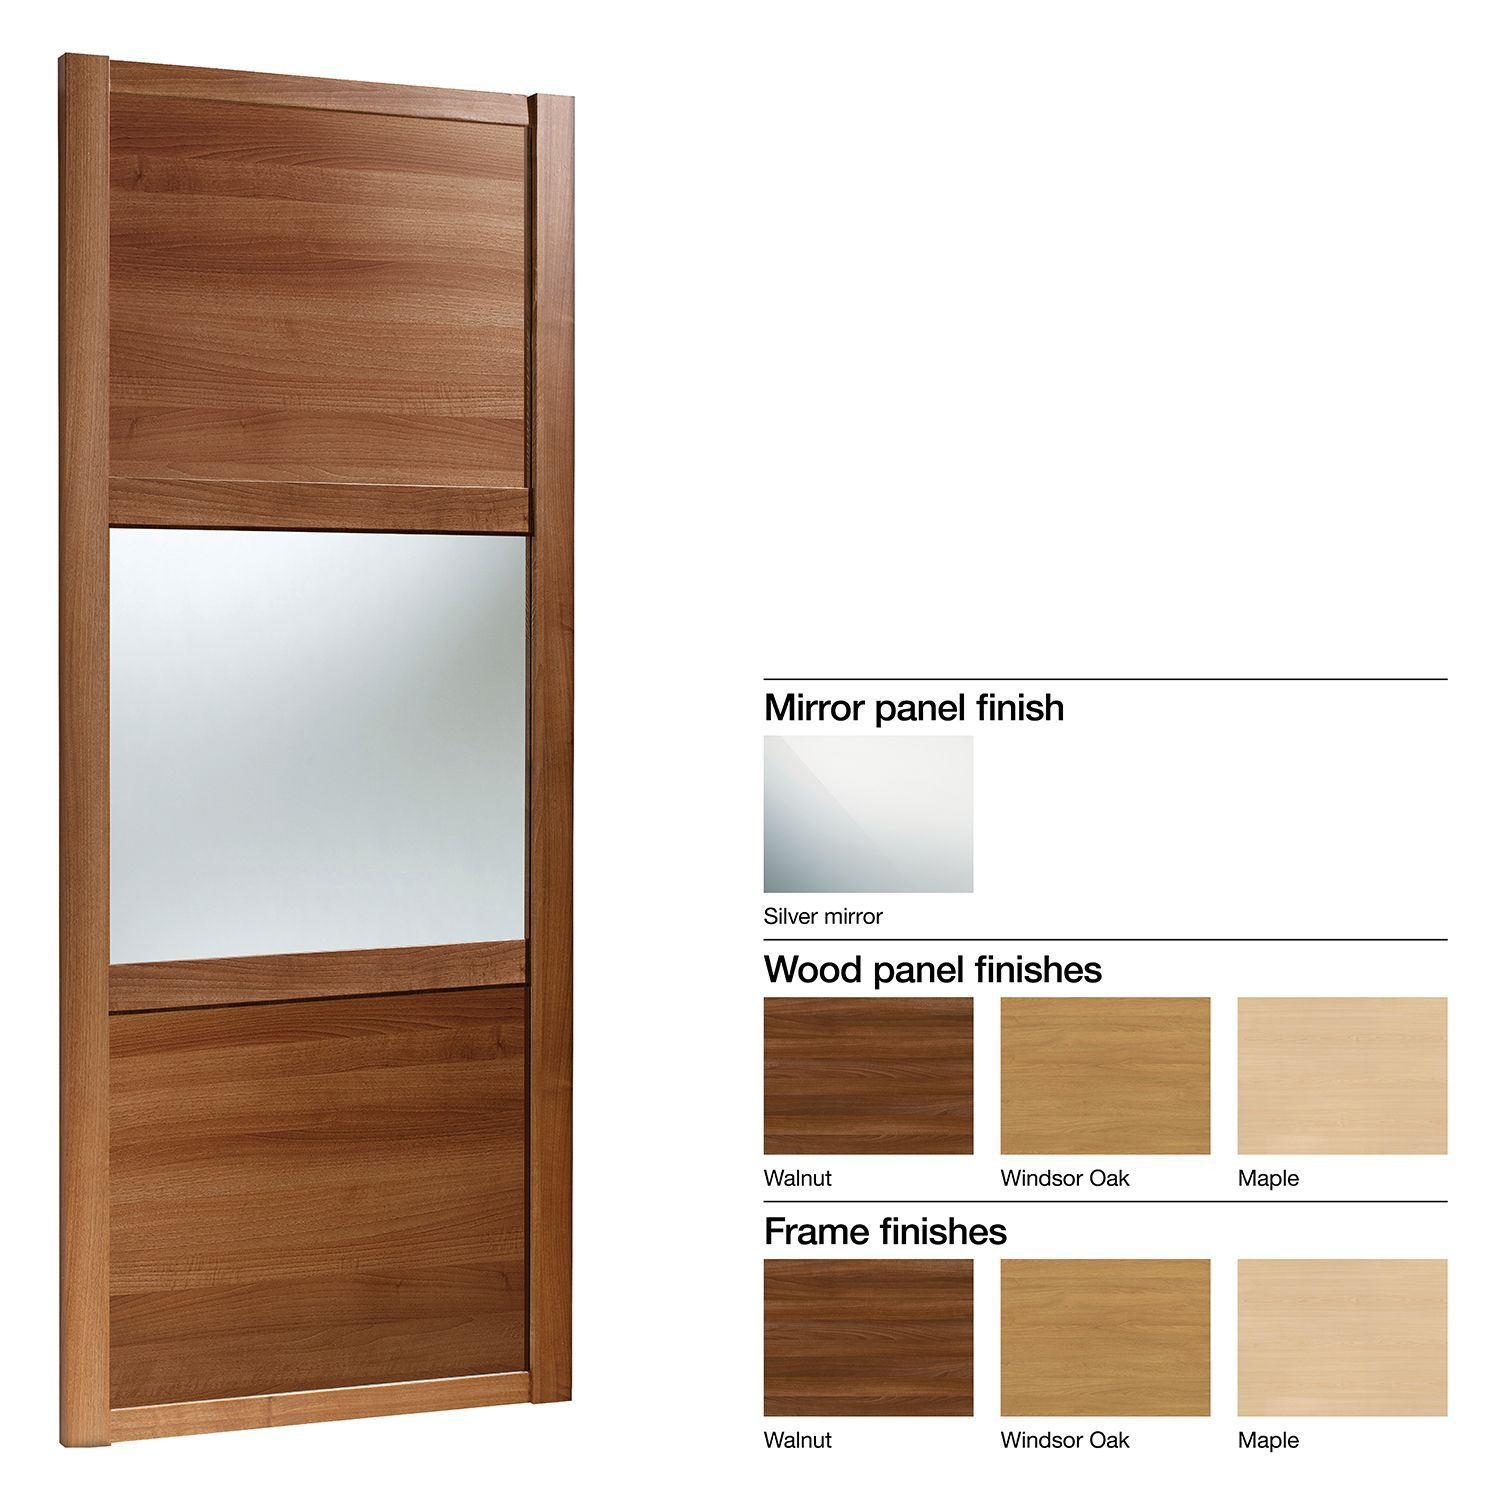 Superb img of Made to Measure Shaker 3 Panel Wood Effect/ with #764426 color and 1500x1500 pixels